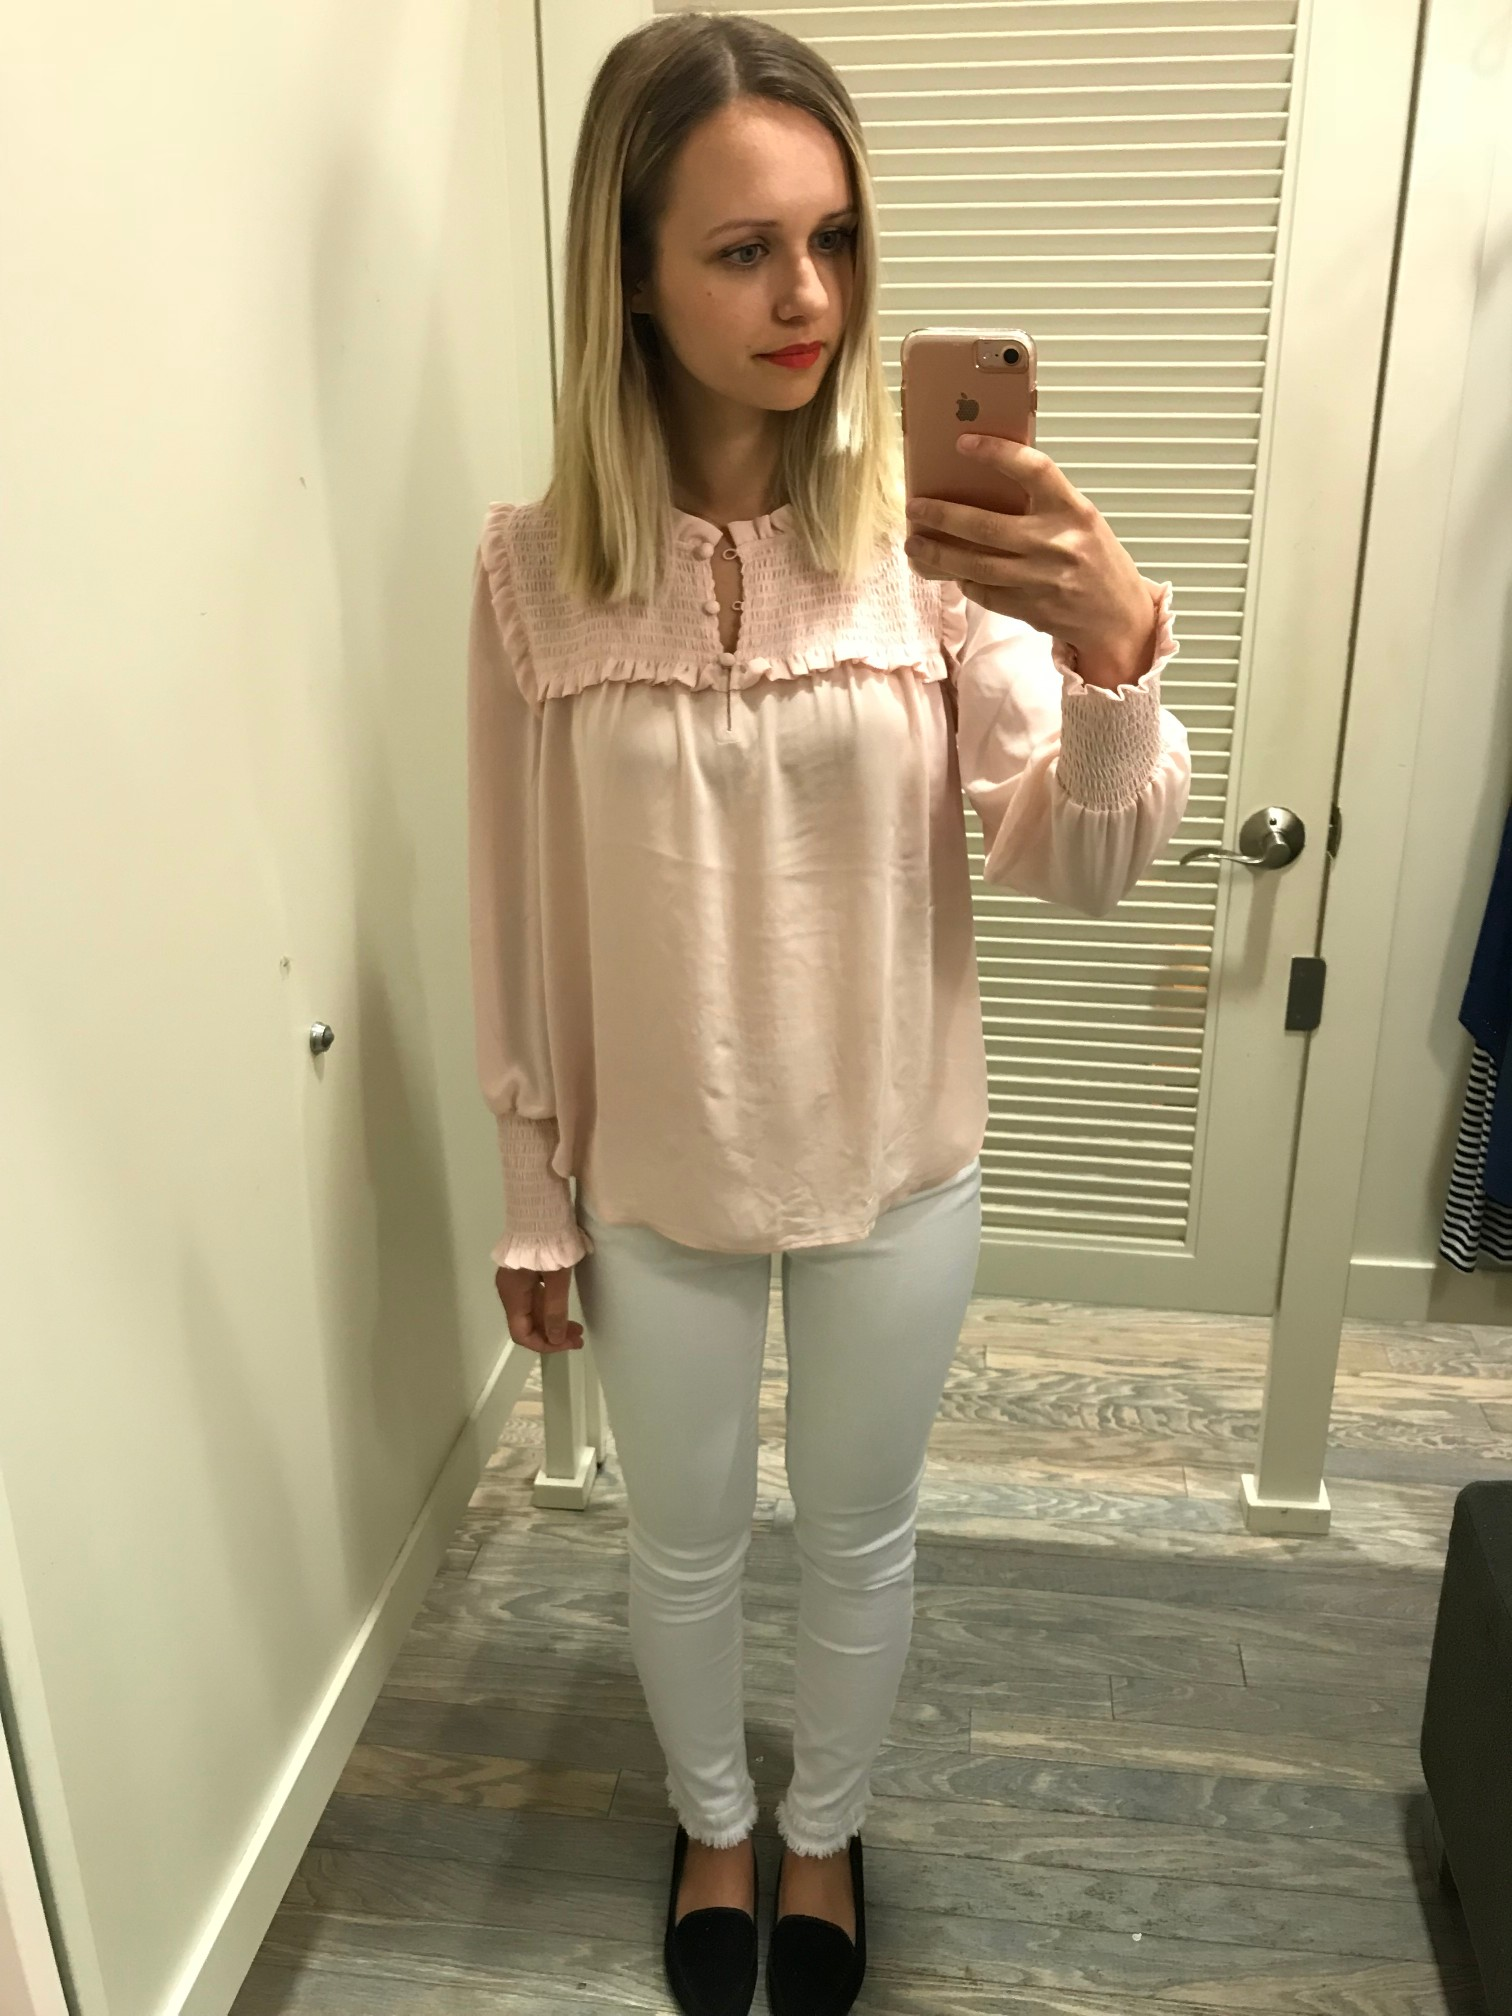 94e70deb3d1 LOFT Smocked Ruffle Blouse - Fitting Room Adventures